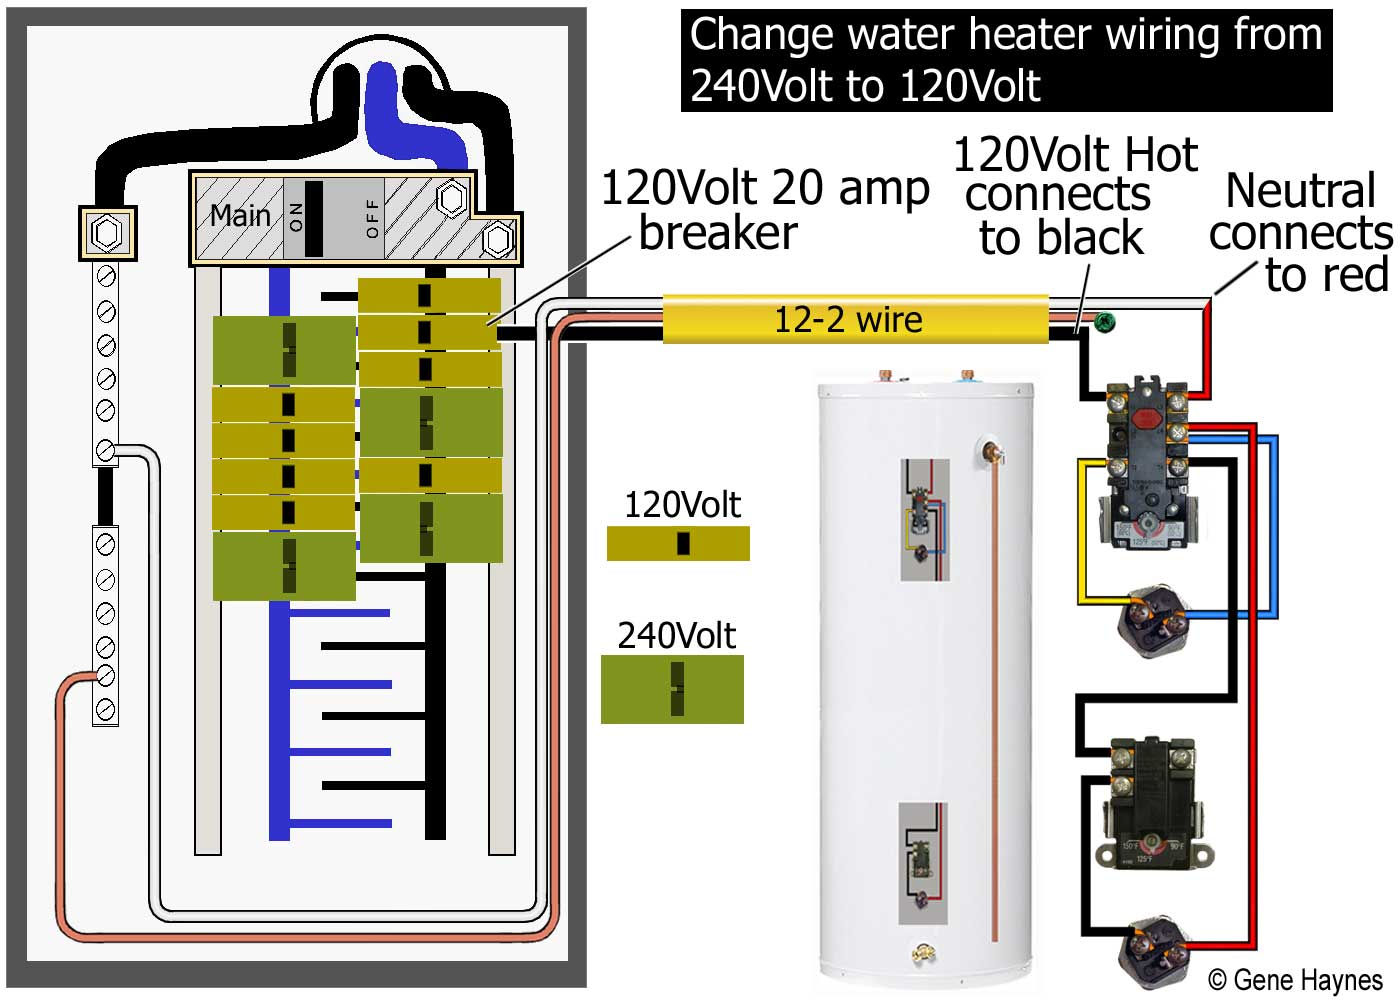 How To Wire Water Heater For 120 Volts - 240 Volt Heater Wiring Diagram